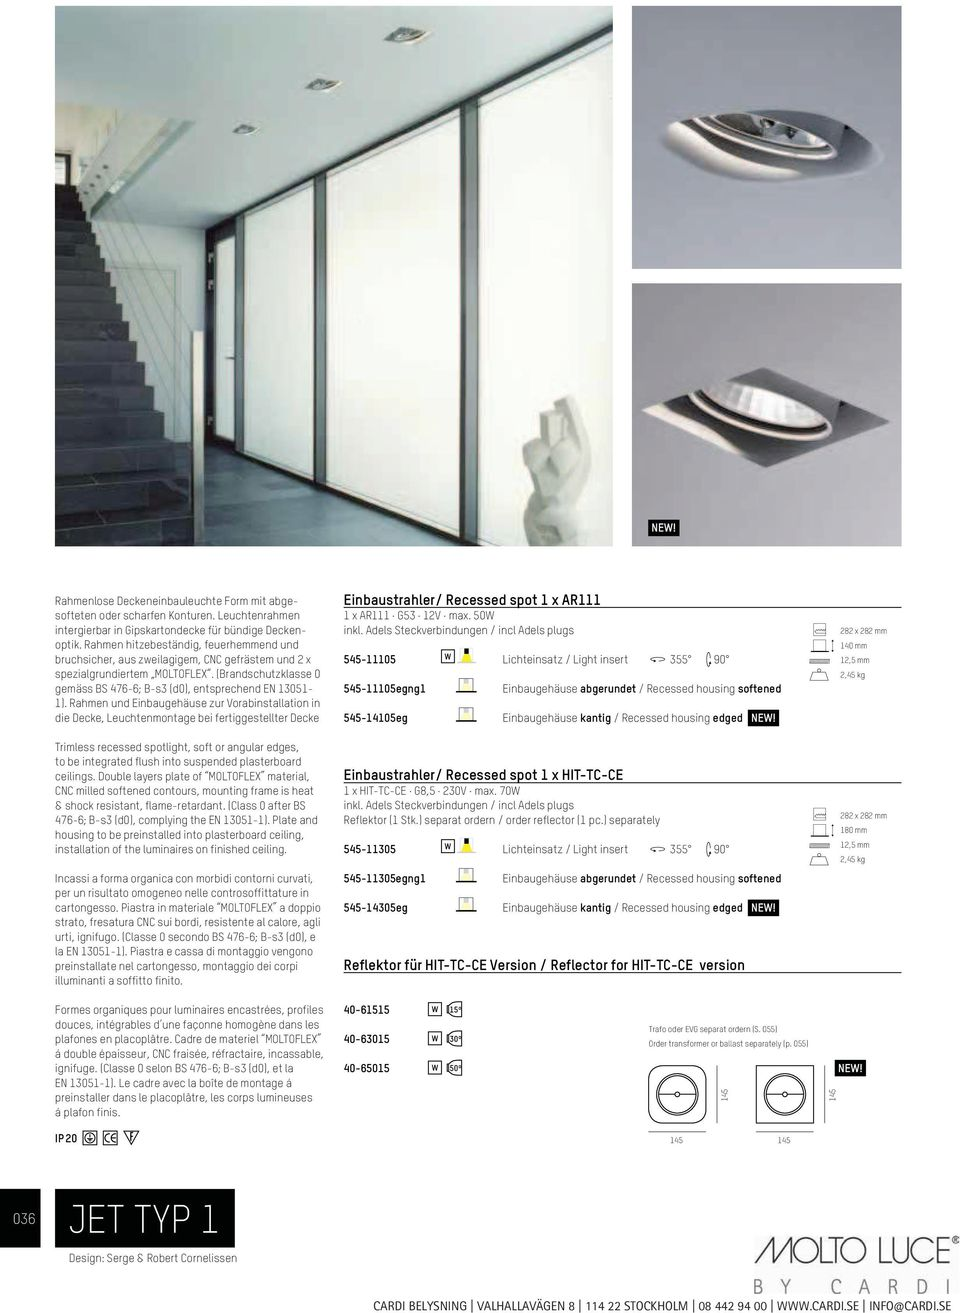 Rahmen und Einbaugehäuse zur Vorabinstallation in die Decke, Leuchtenmontage bei fertiggestellter Decke Trimless recessed spotlight, soft or angular edges, to be integrated flush into suspended